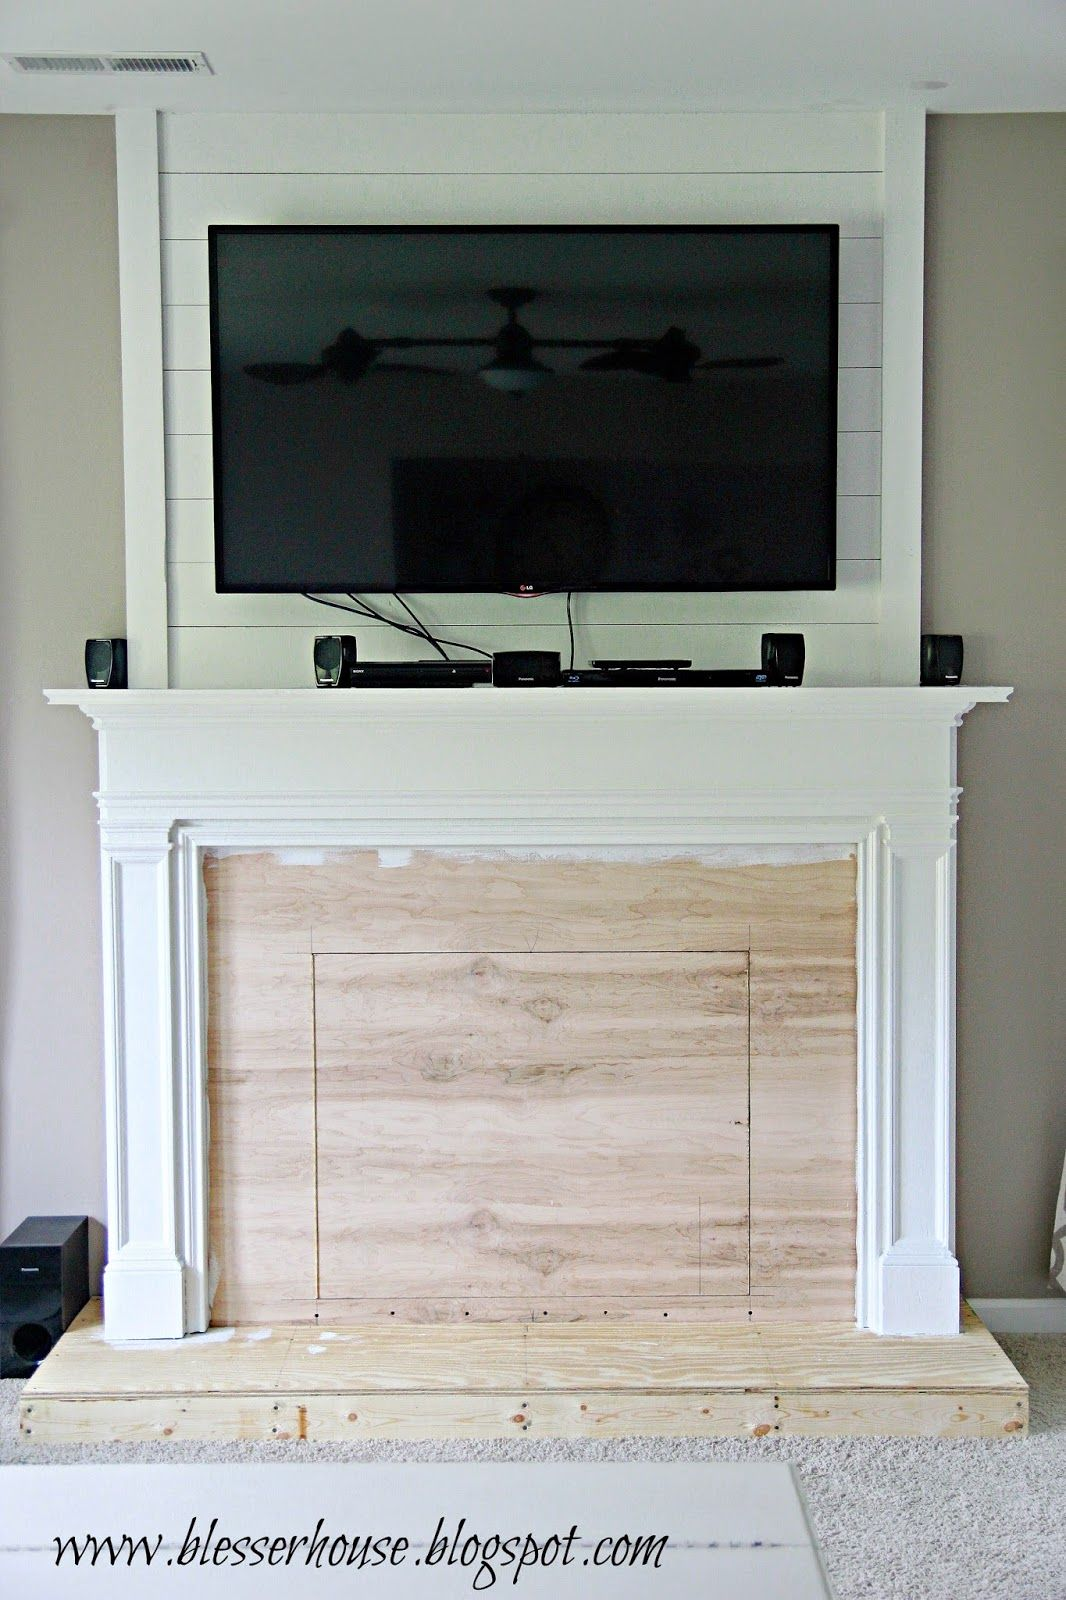 Pinterest Faux Fireplace Part - 42: Painting The Faux Fireplace - Blesser House Featured On @Remodelaholic